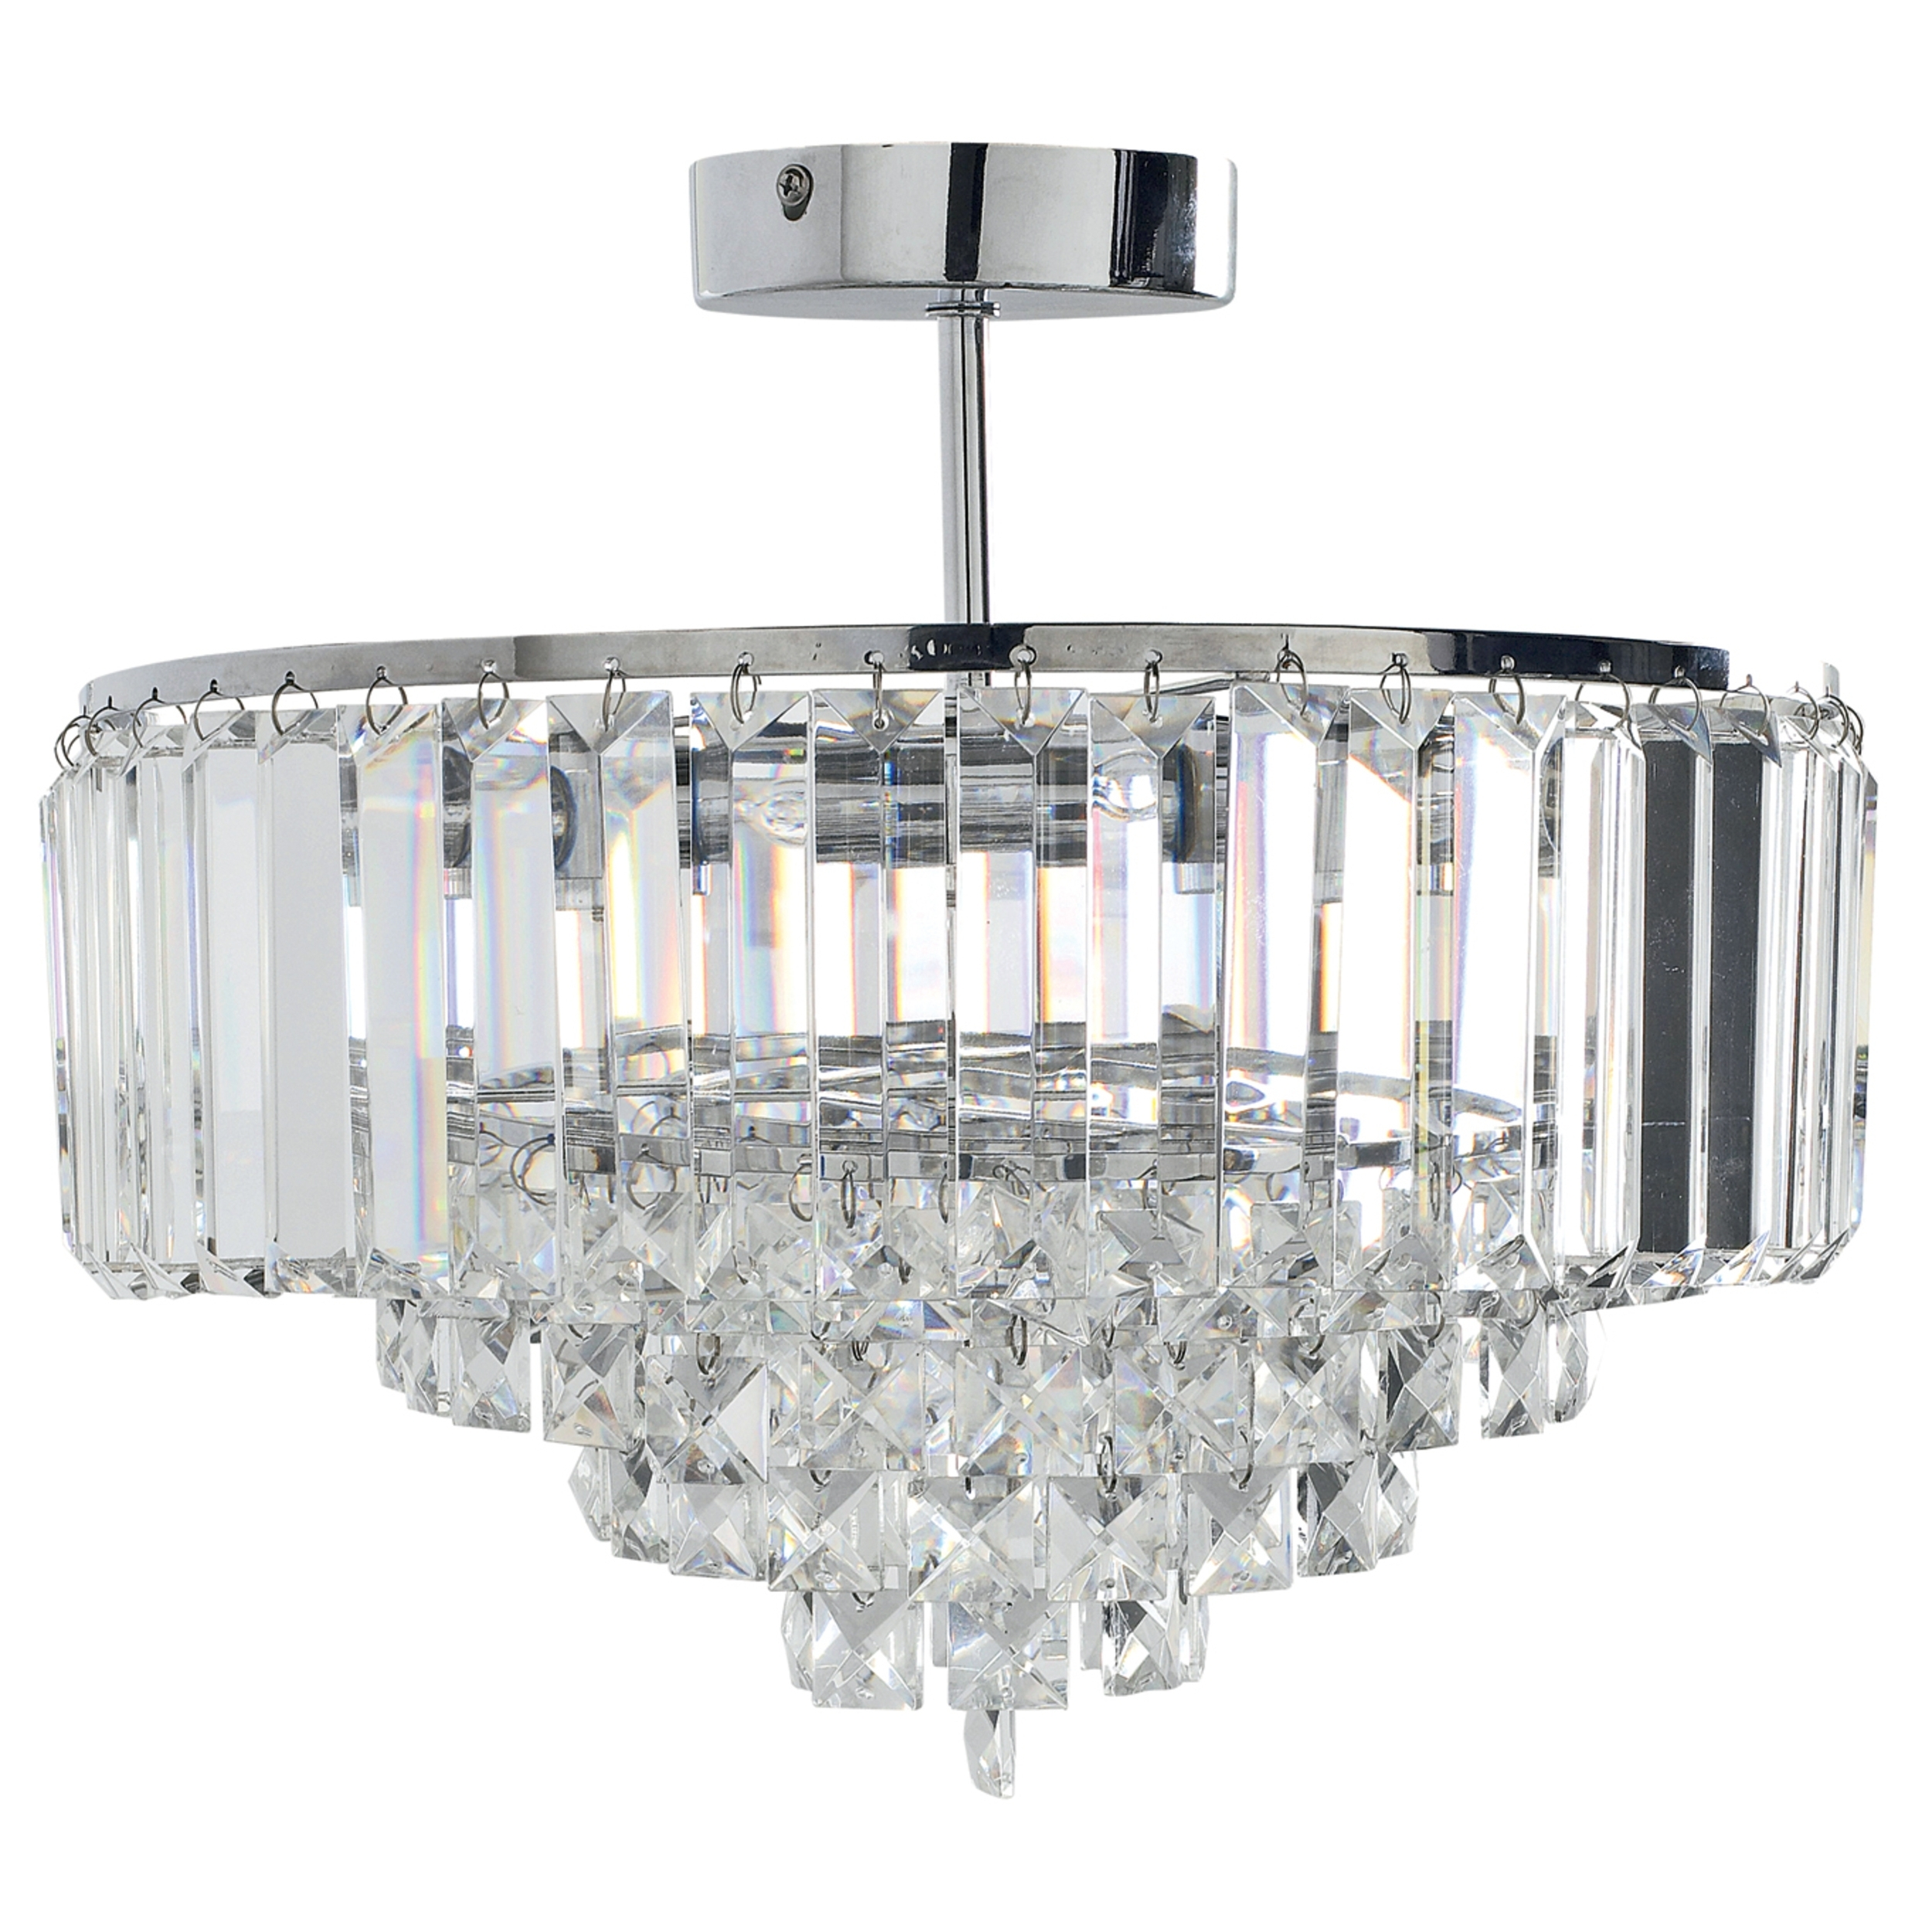 Vienna Crystal Chandeliers Intended For Latest Vienna Crystal And Chrome Pendant Light (View 18 of 20)